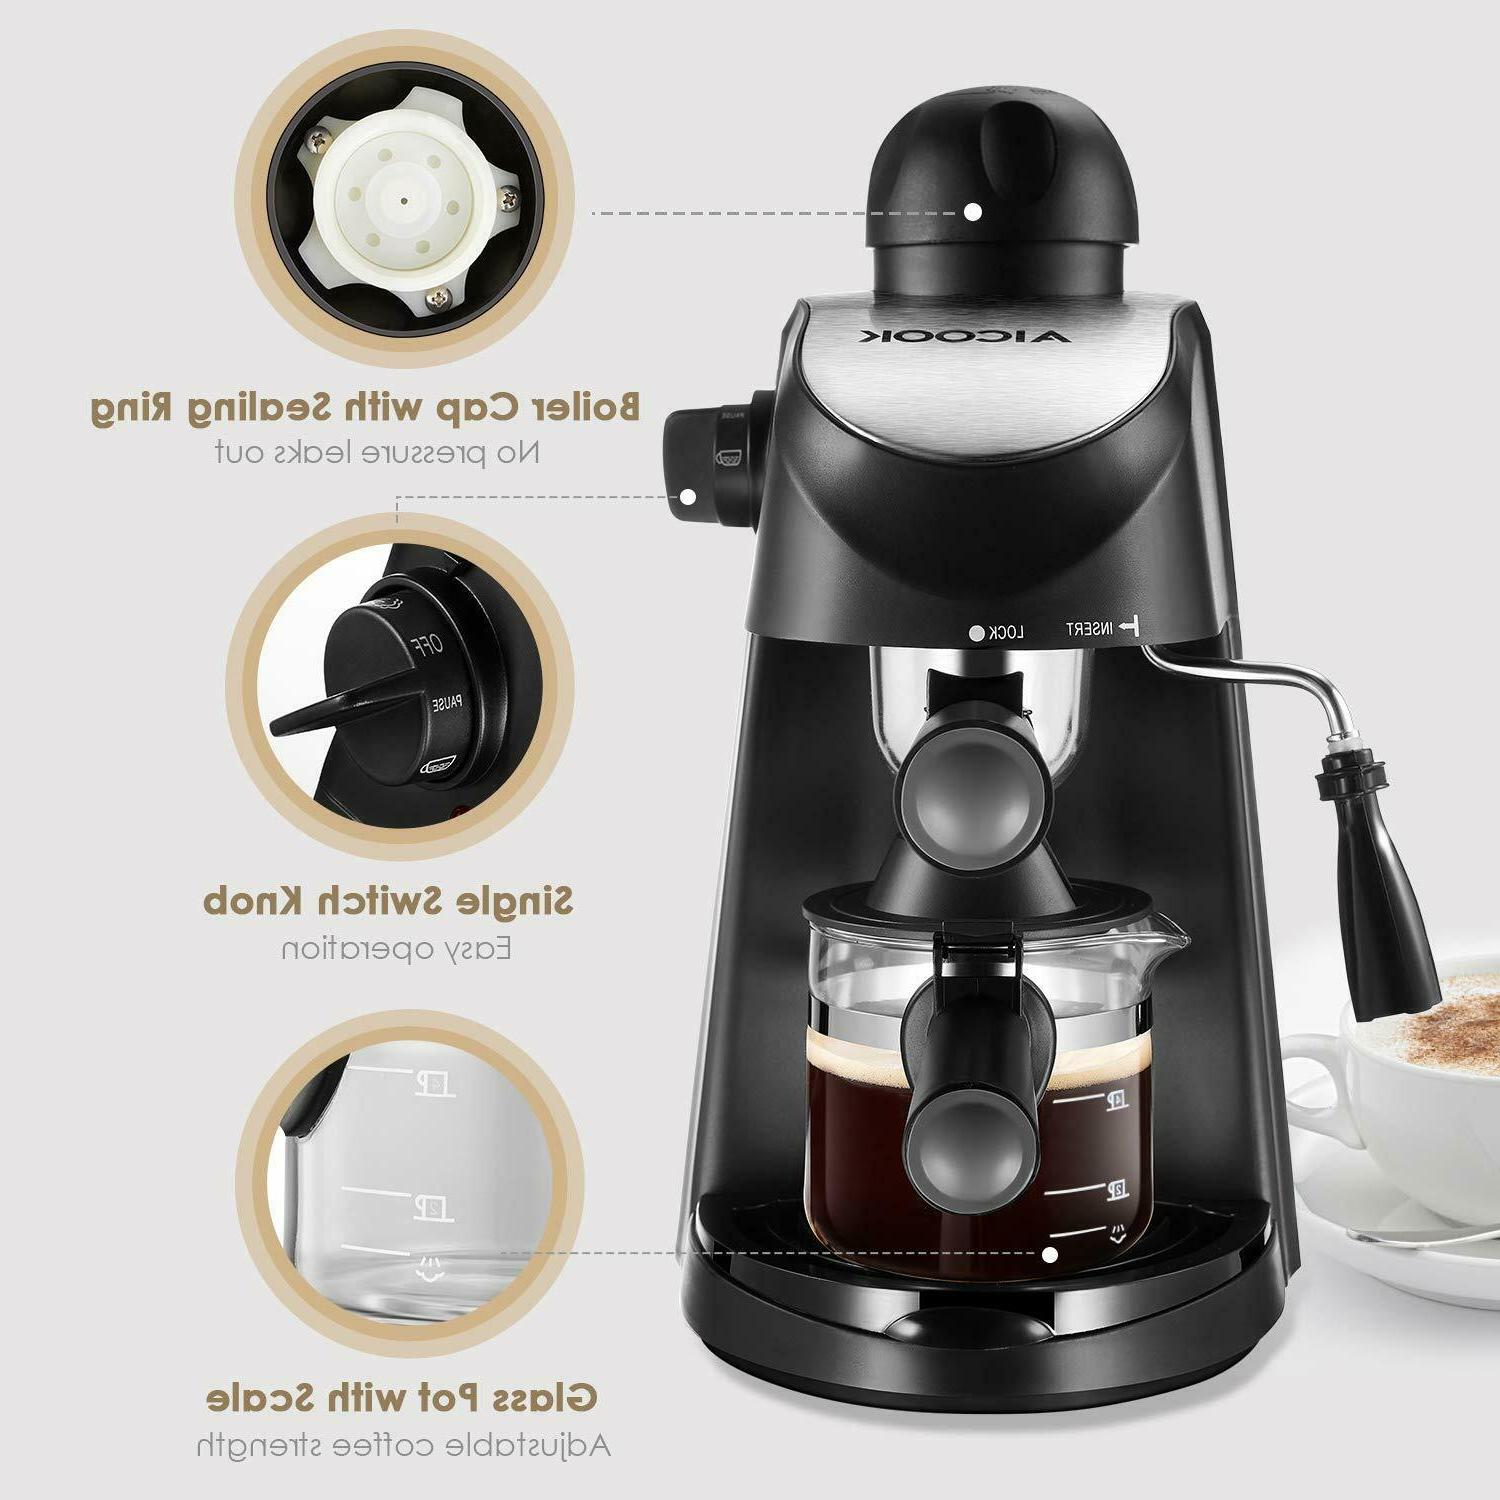 Home Espresso Expresso Latte Coffee Steam Frothing